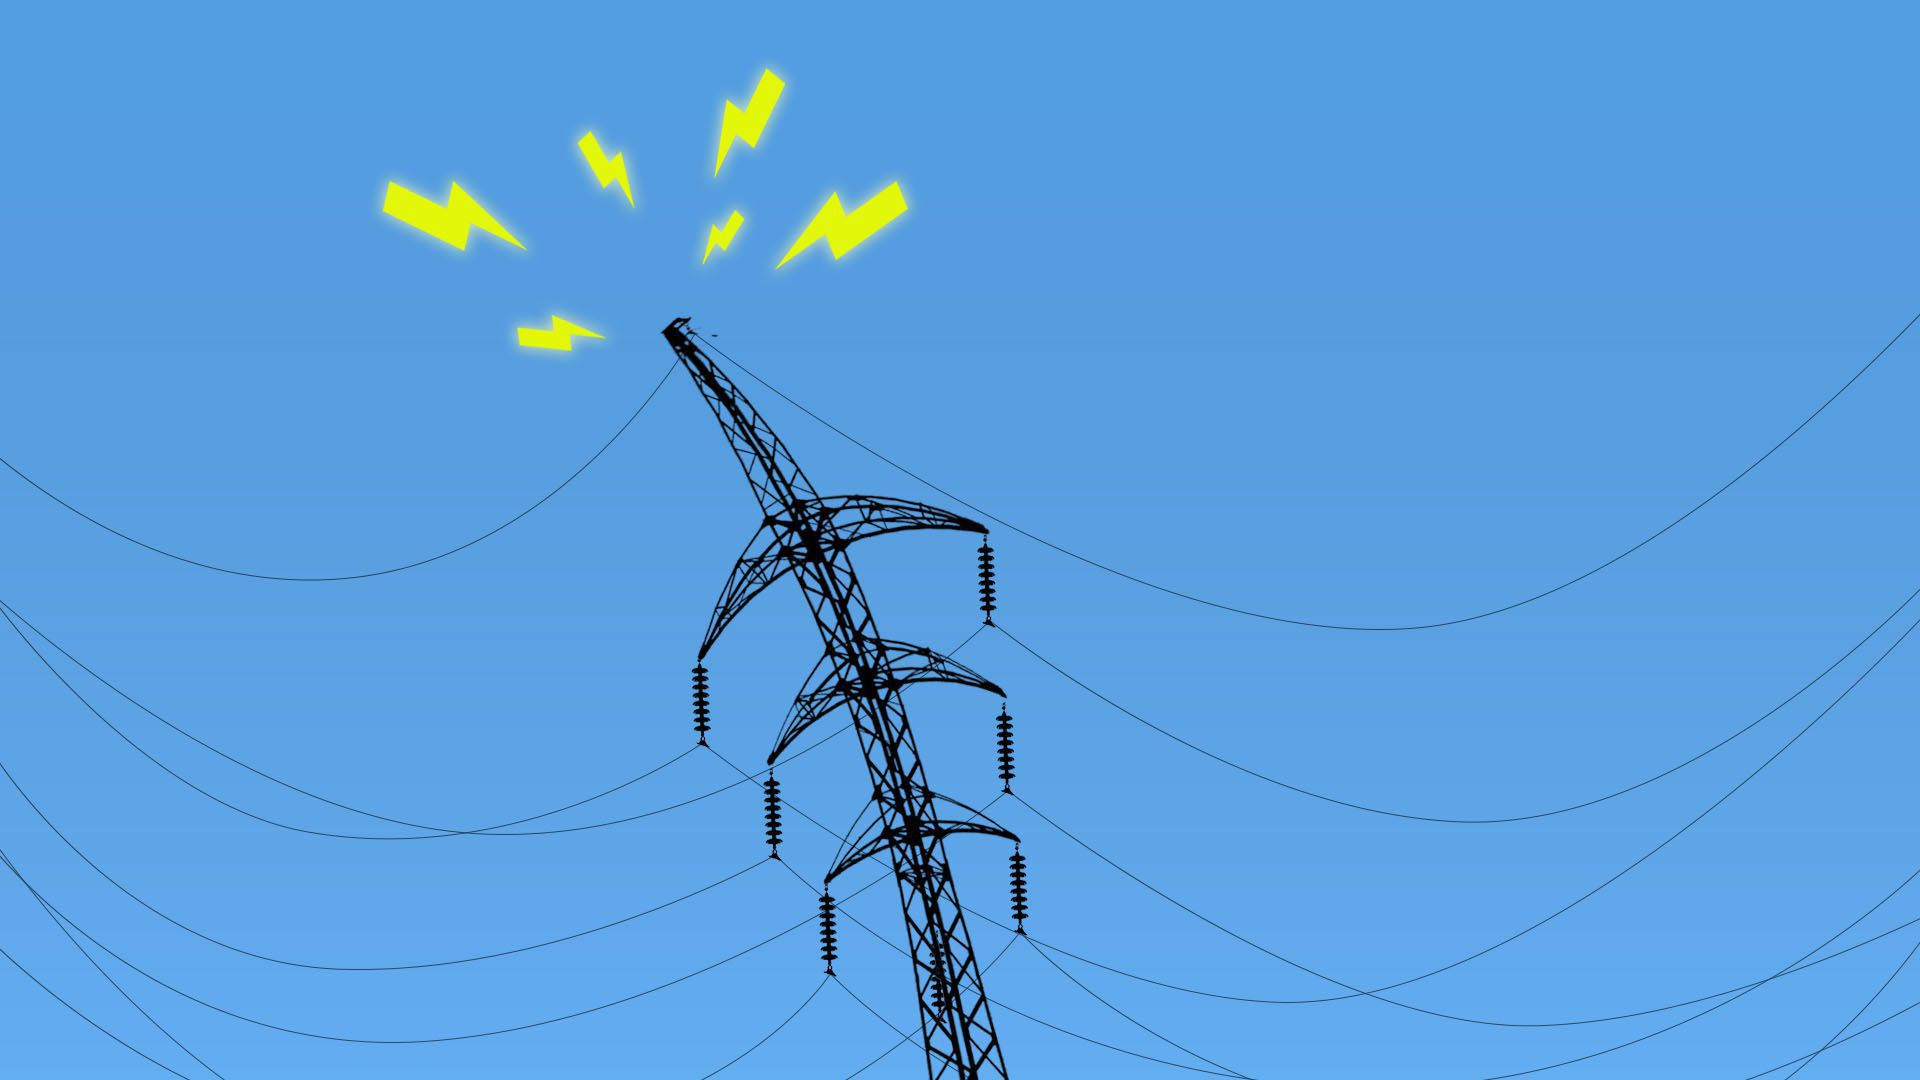 Illustrated power line being hit with lightening bolts